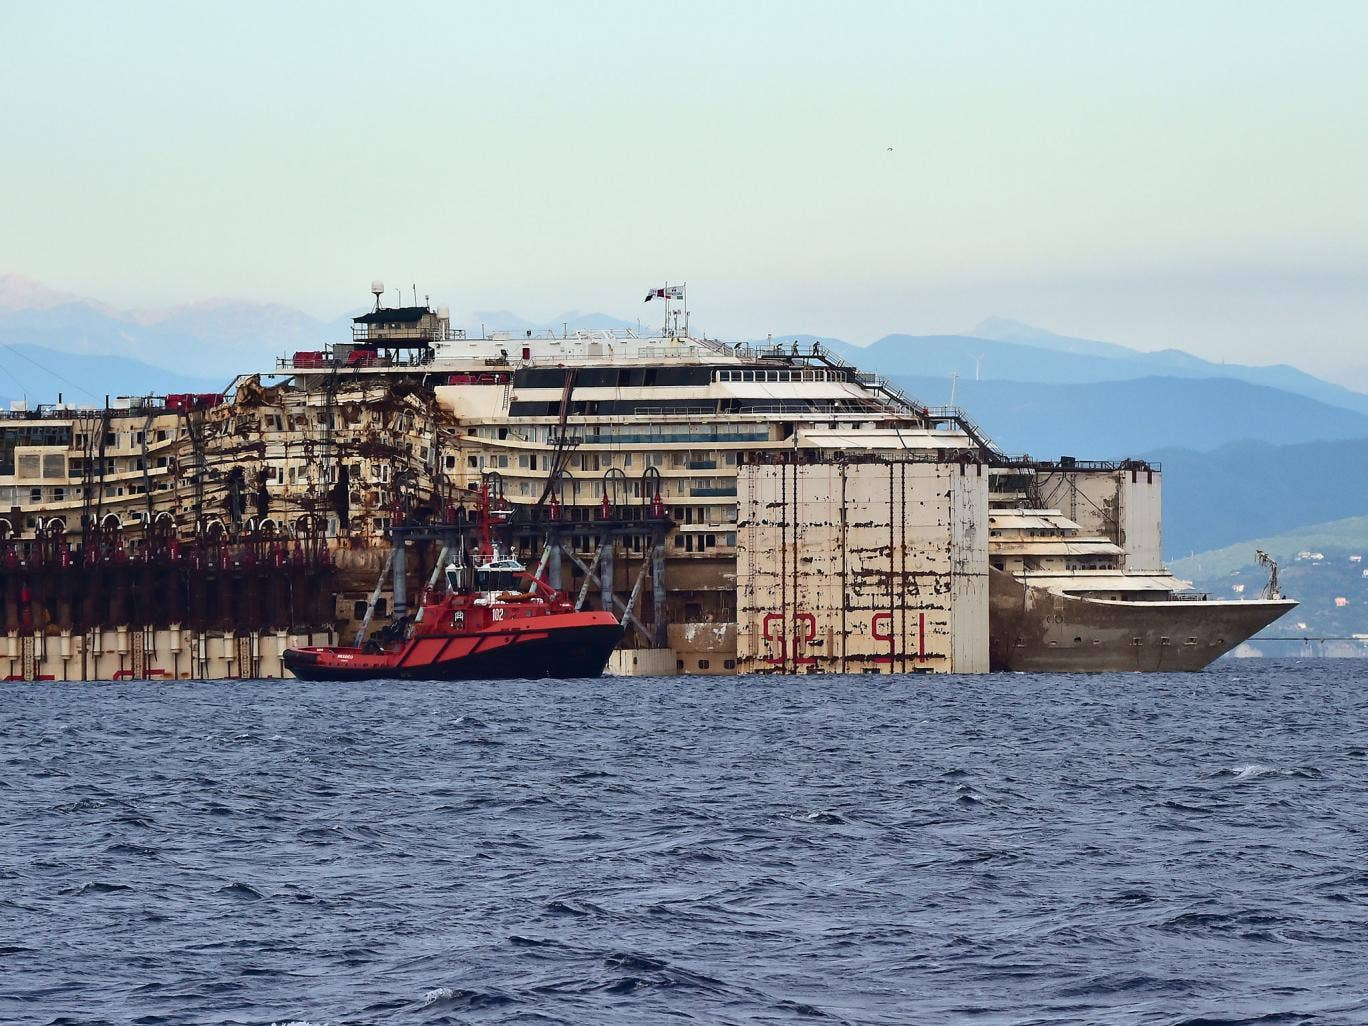 The refloated wreck of the Costa Concordia cruise ship is being dragged to the harbor of Pra di Voltri near Genoa